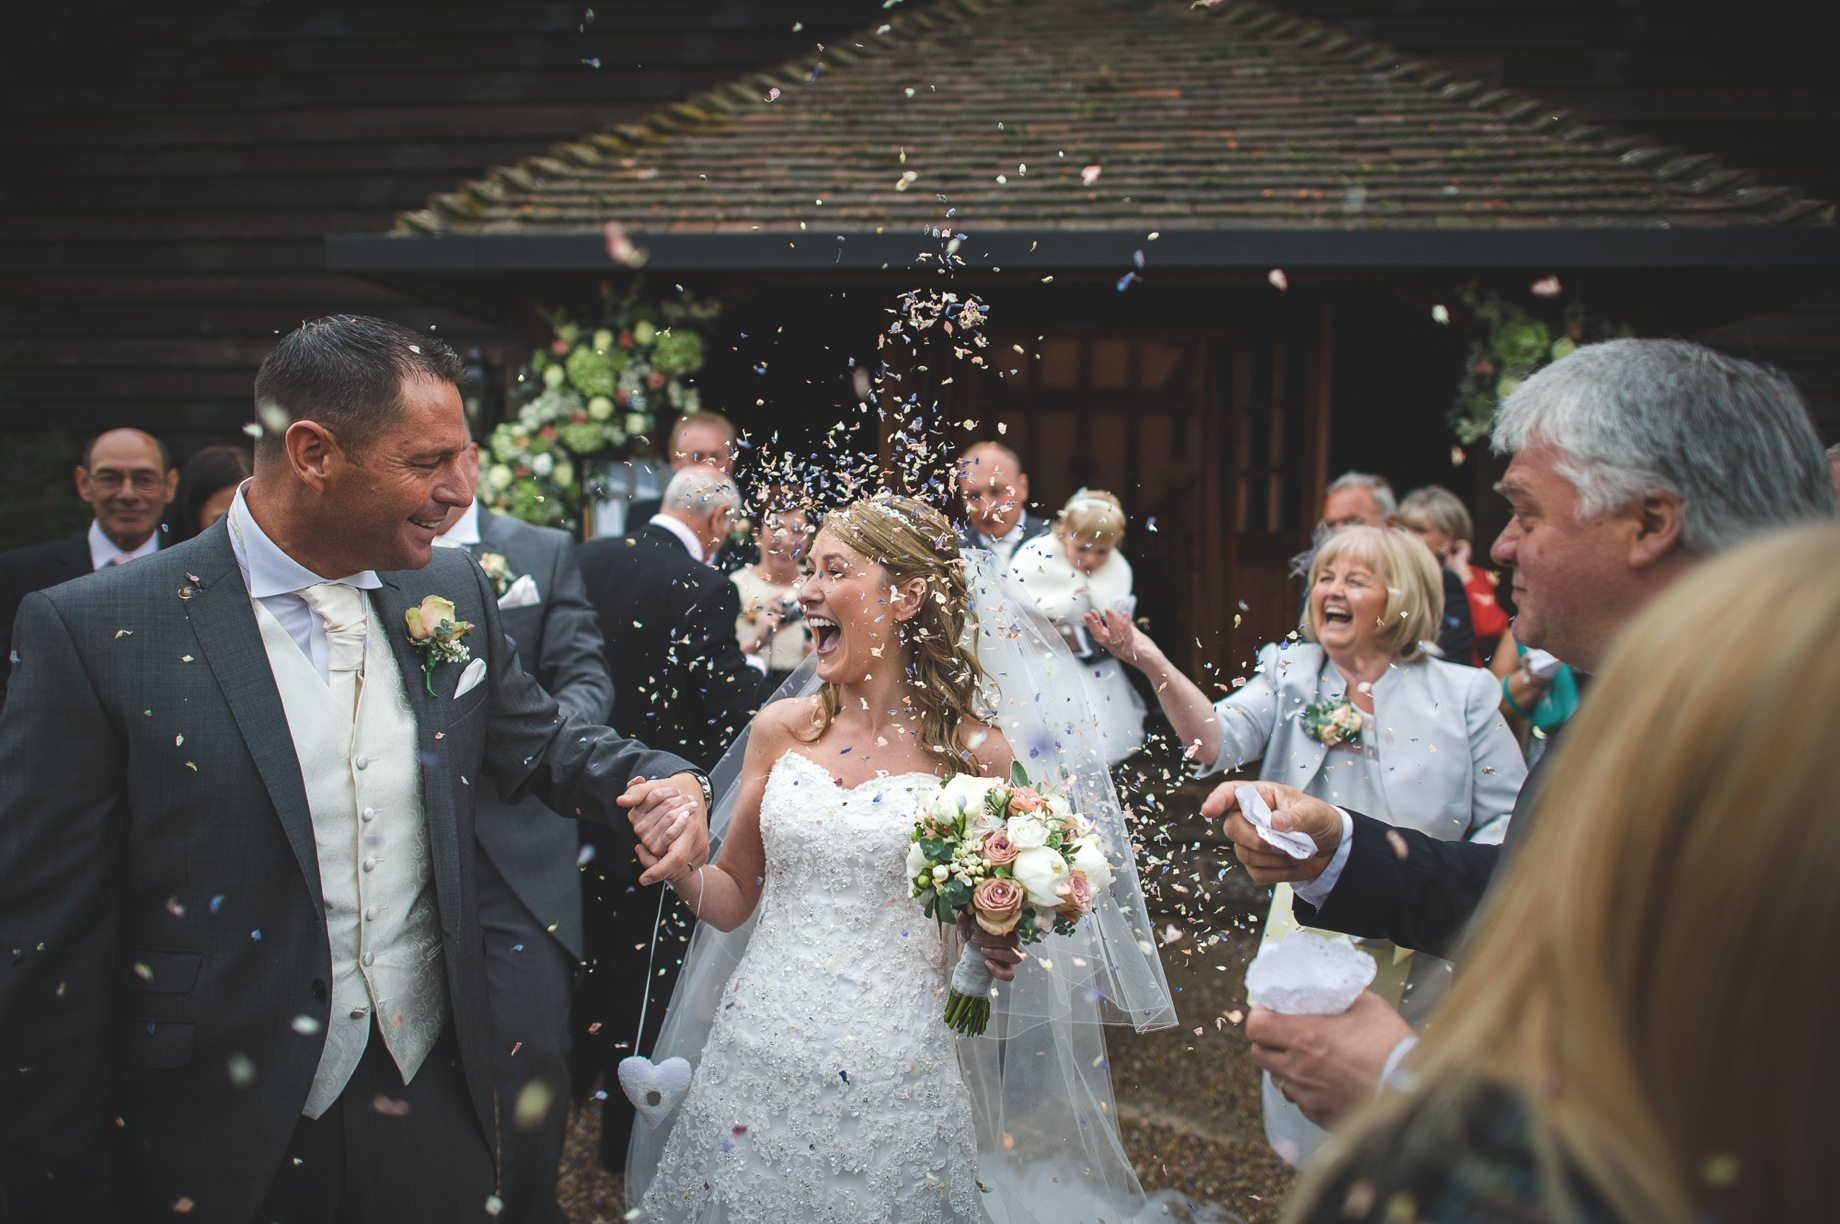 55Best Wedding Photography Guy Collier